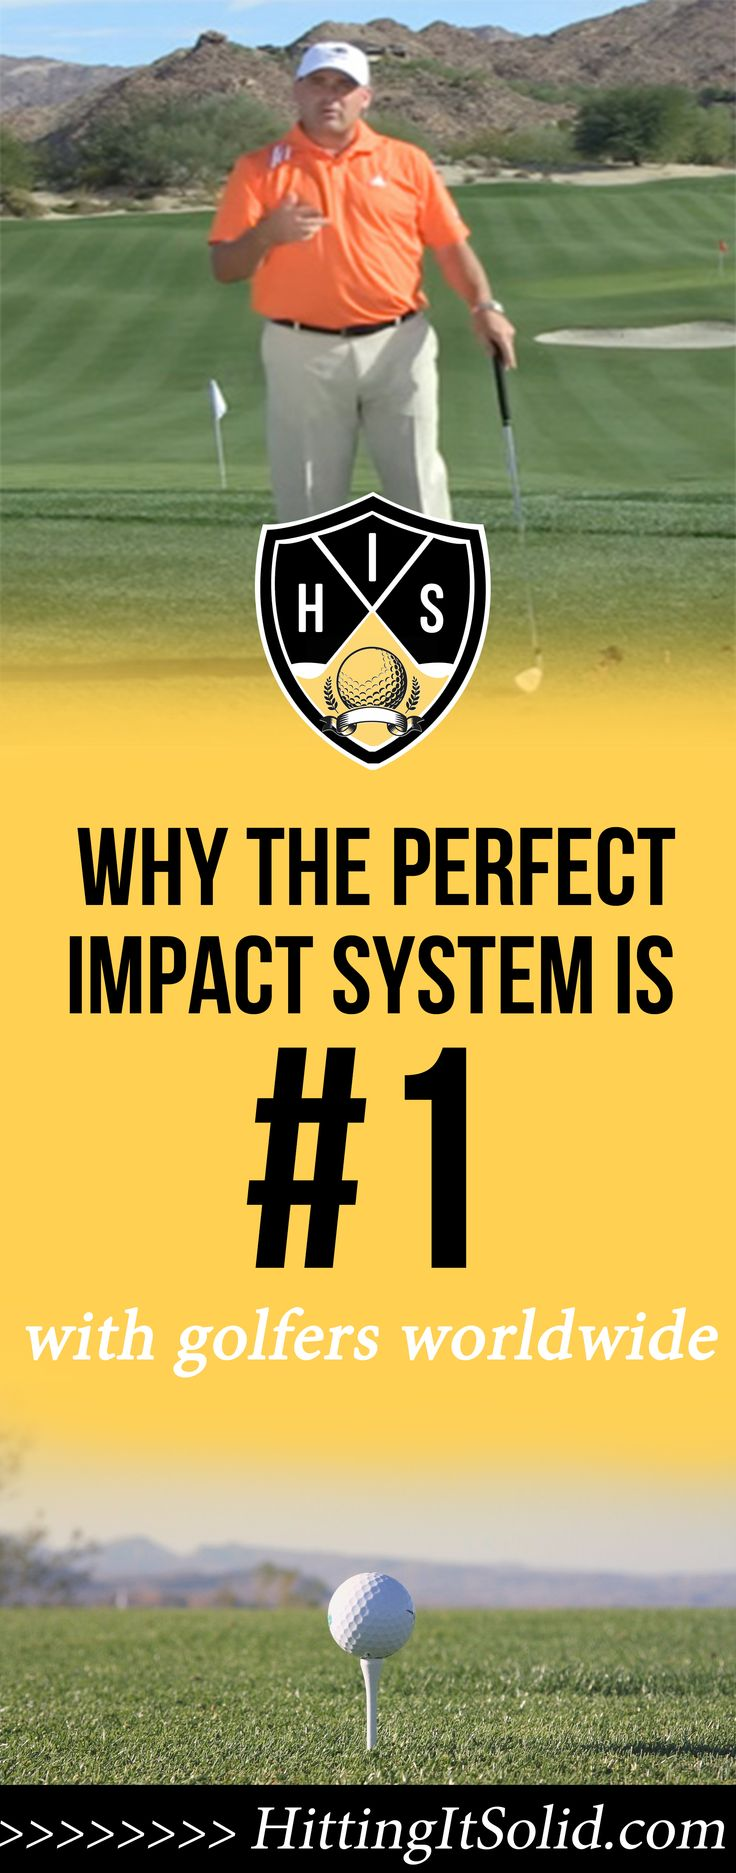 If you want one of the best golf instruction systems online, the Perfect Impact System is a great place to start. It covers the simple golf fundamentals you need to play better golf and lower your scores. This comprehensive Perfect Impact System review gives you the right information you need to make the correct choice to help your golf game.